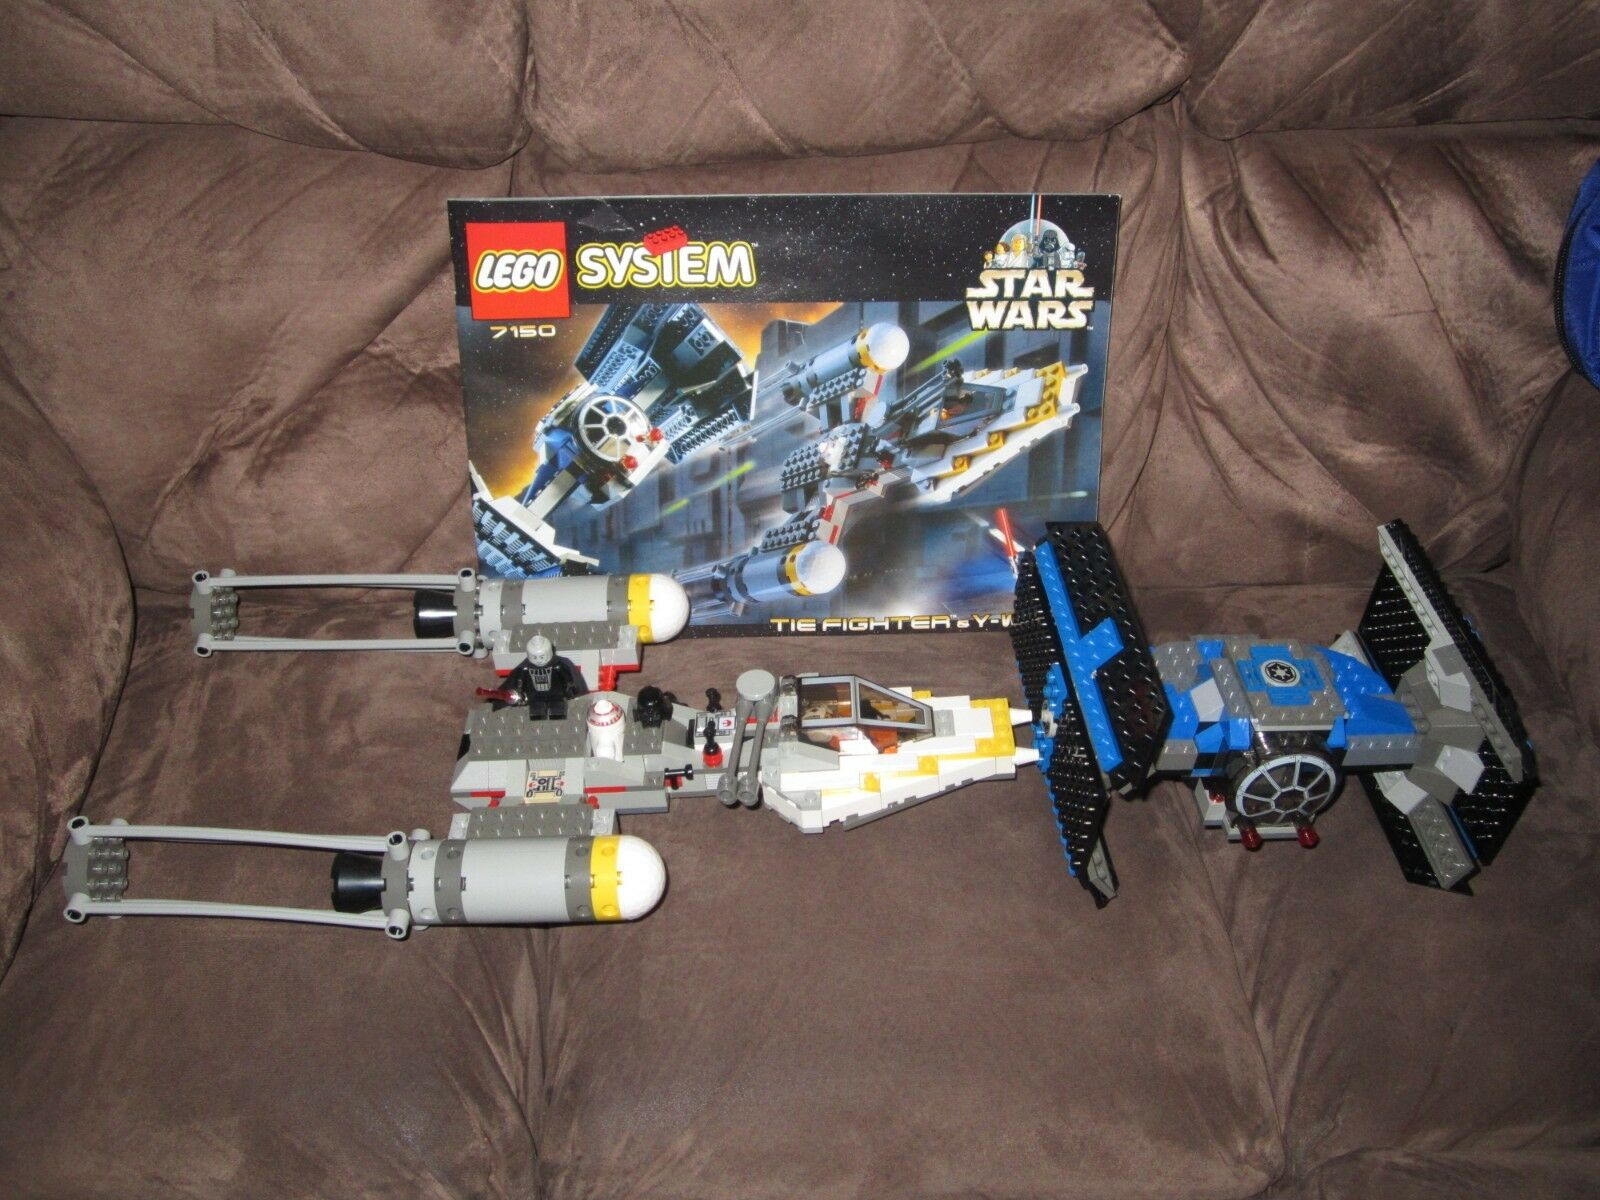 LEGO Star Wars 7150 Y-Wing Set with 3 Mini Figures (Complete)